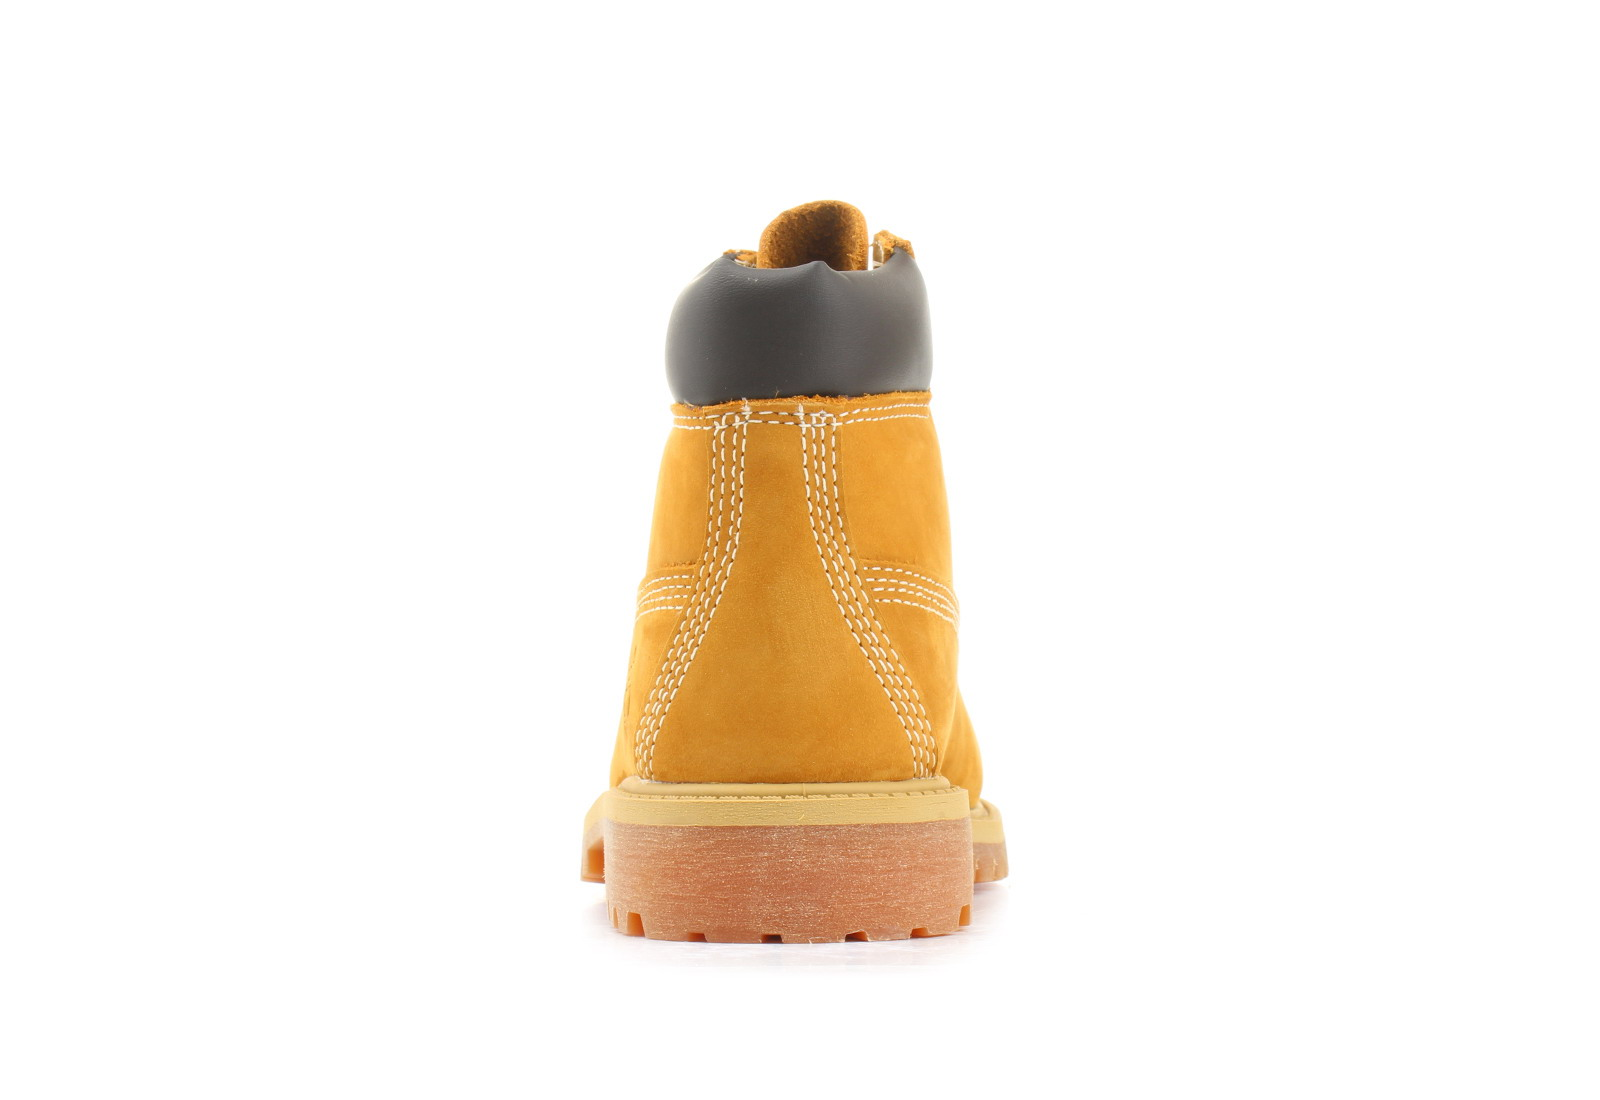 c451f08bc7 Timberland Topánky - 6 Inch Prem Boot - 12709-ble - Tenisky